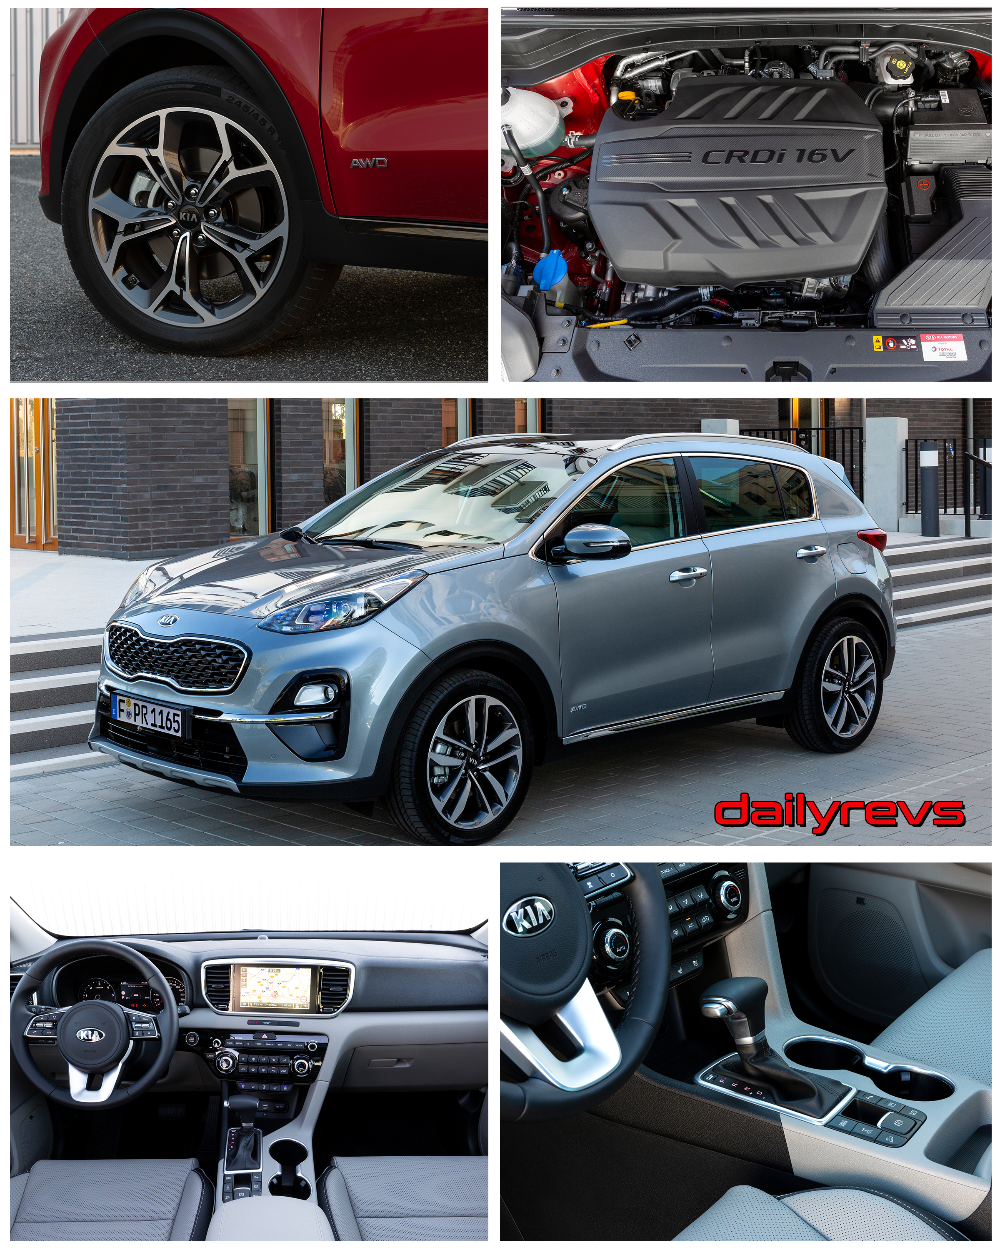 2019 Kia Sportage Hq Pictures Specs Information And Videos Dailyrevs Kia Sportage Kia Sportage